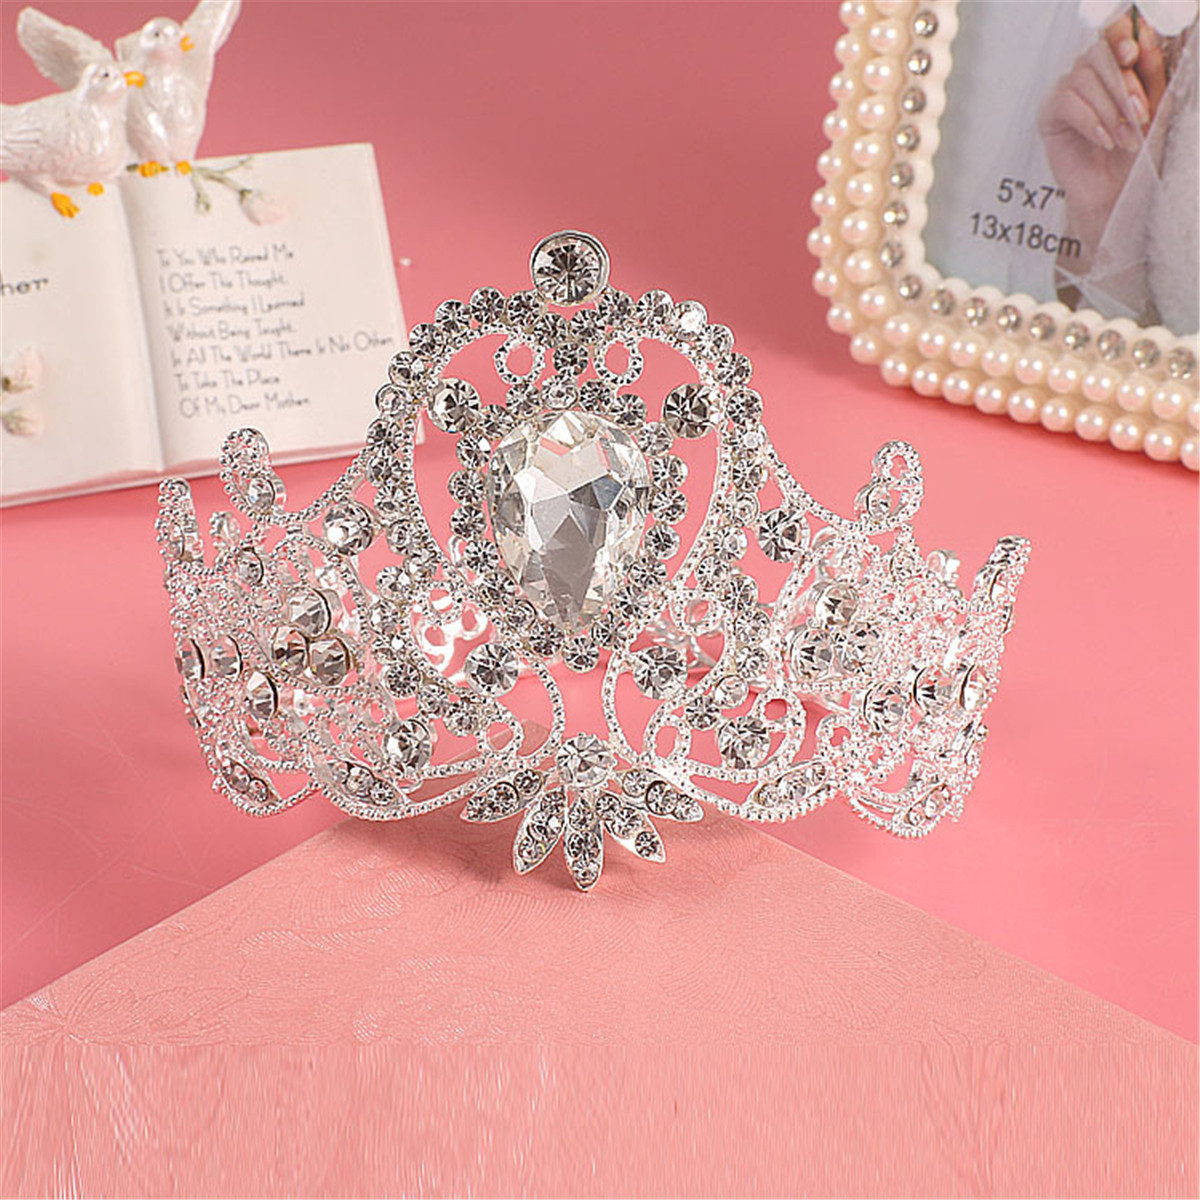 Bride Diamond Crystal Rhinestone Crown Vintage Wedding Bridal Headbrand Queen Tiara Hair Accessories